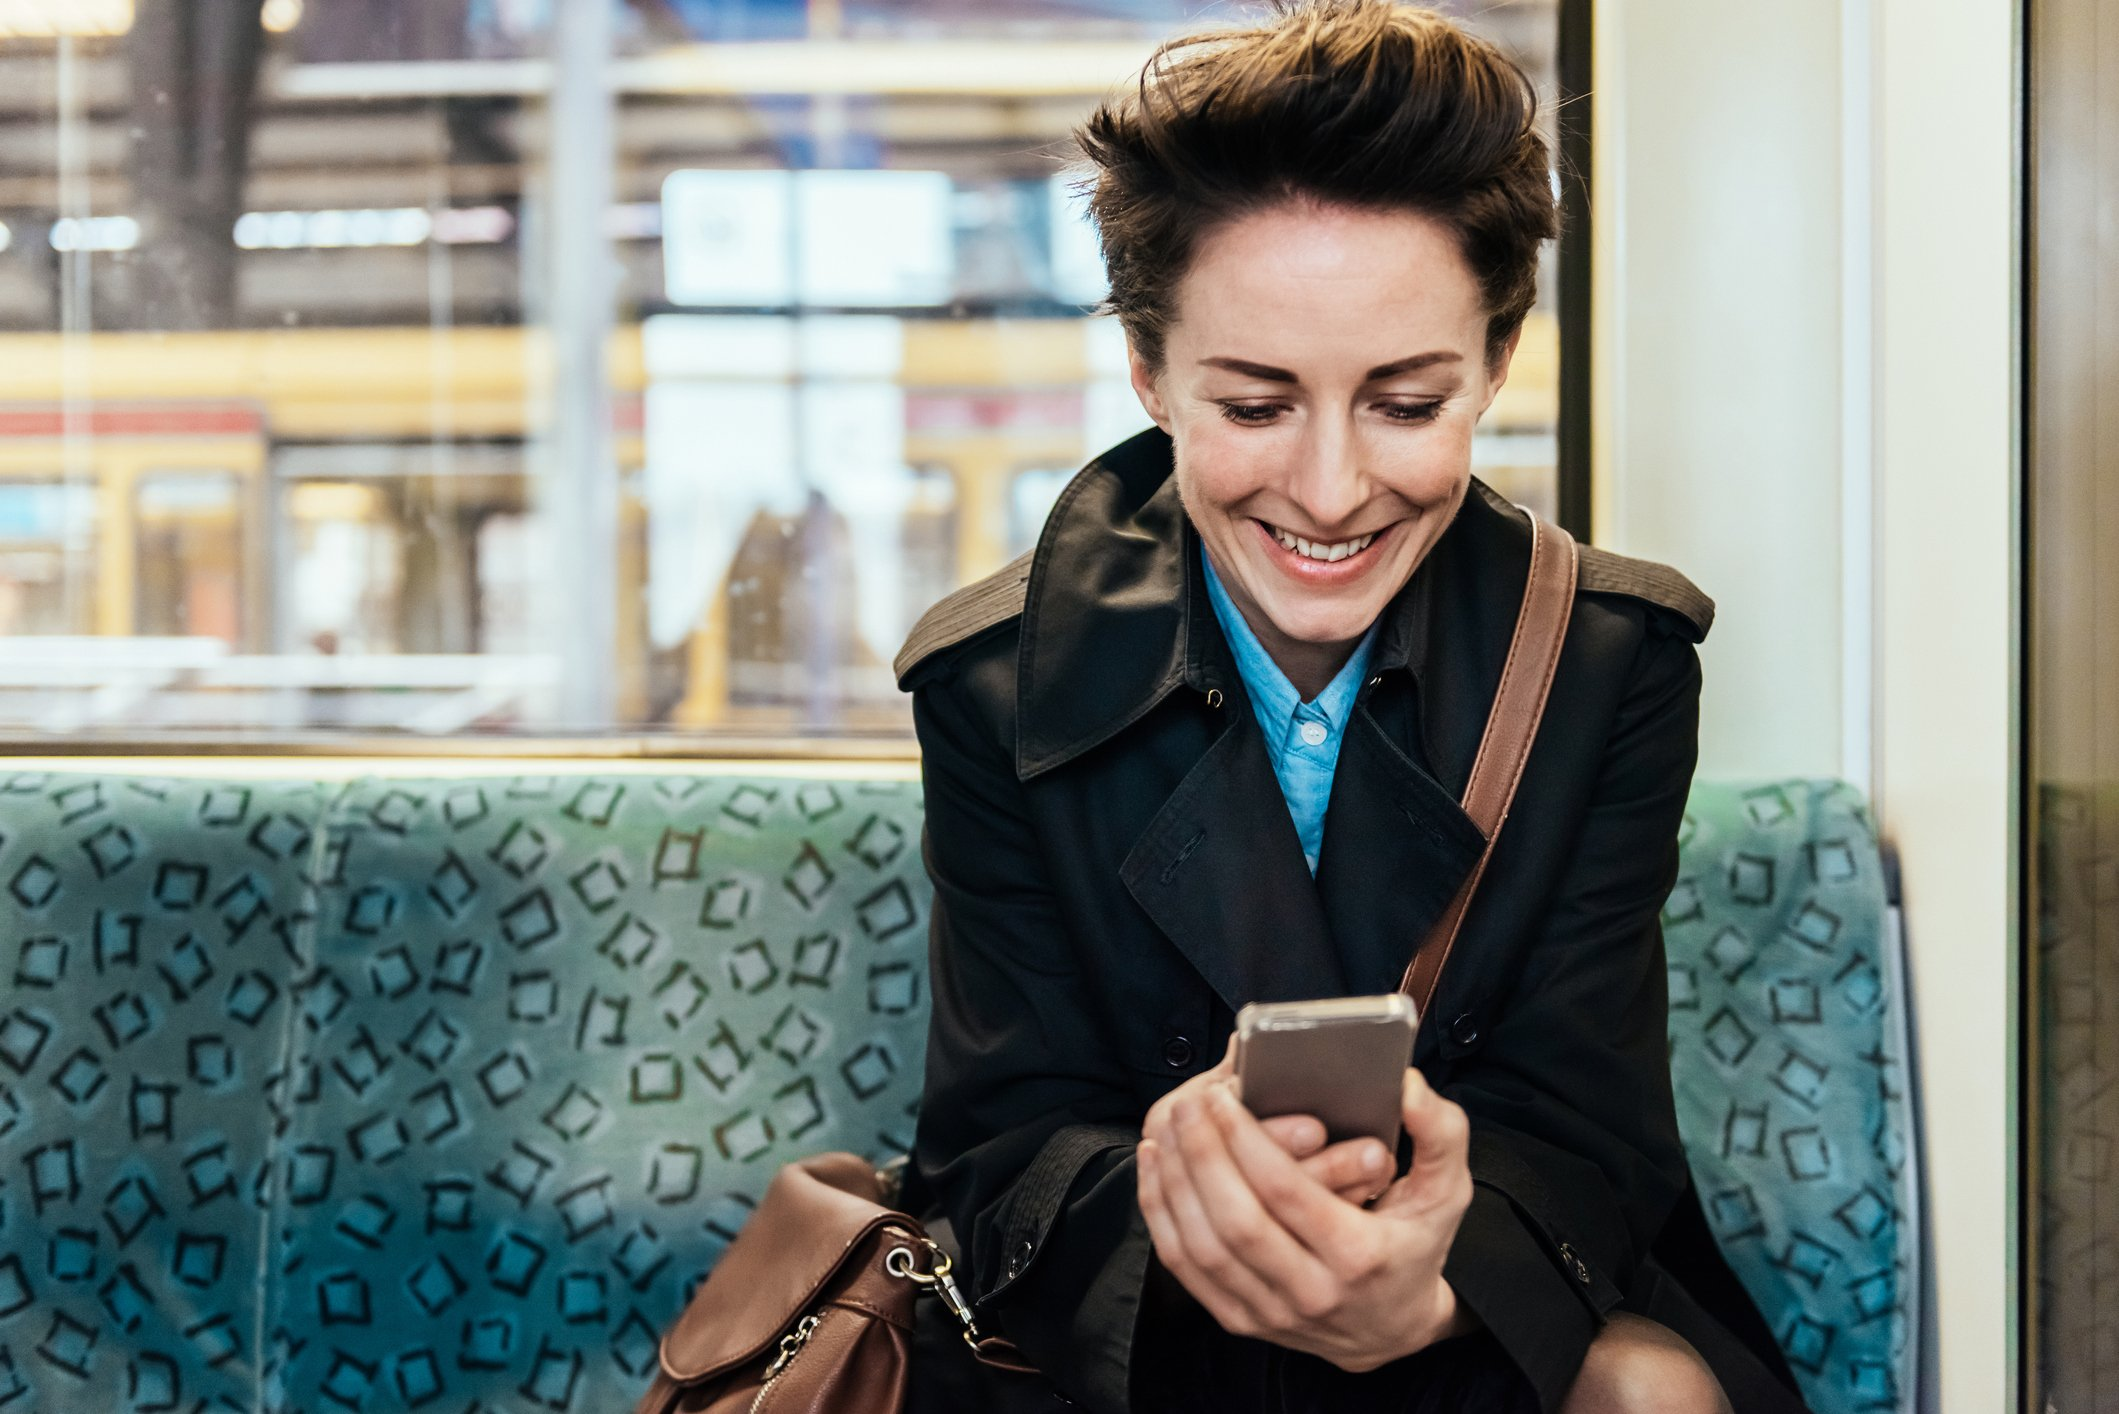 Mature businesswoman checking Messages on her smart phone while commuting in train